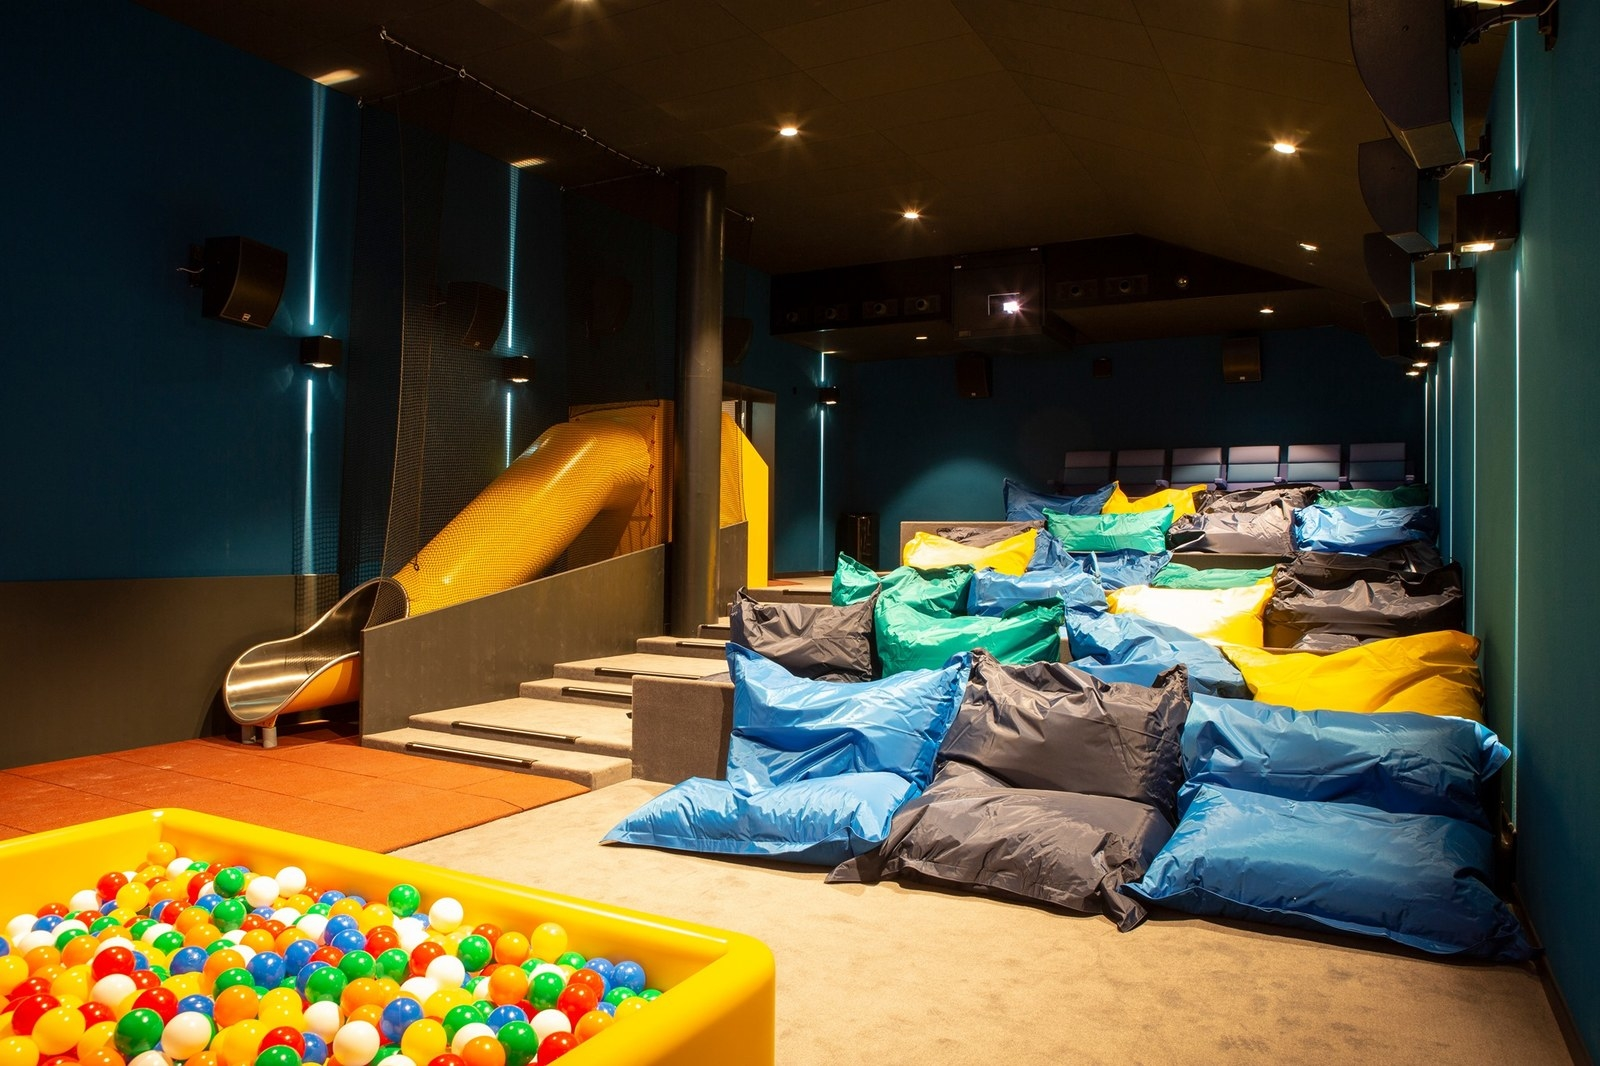 I mean, bean bag chairs! A slide! A ball pit! I'm living for this whole aesthetic. The theater had actual kids submit their ideas so you know it's officially kid-approved.